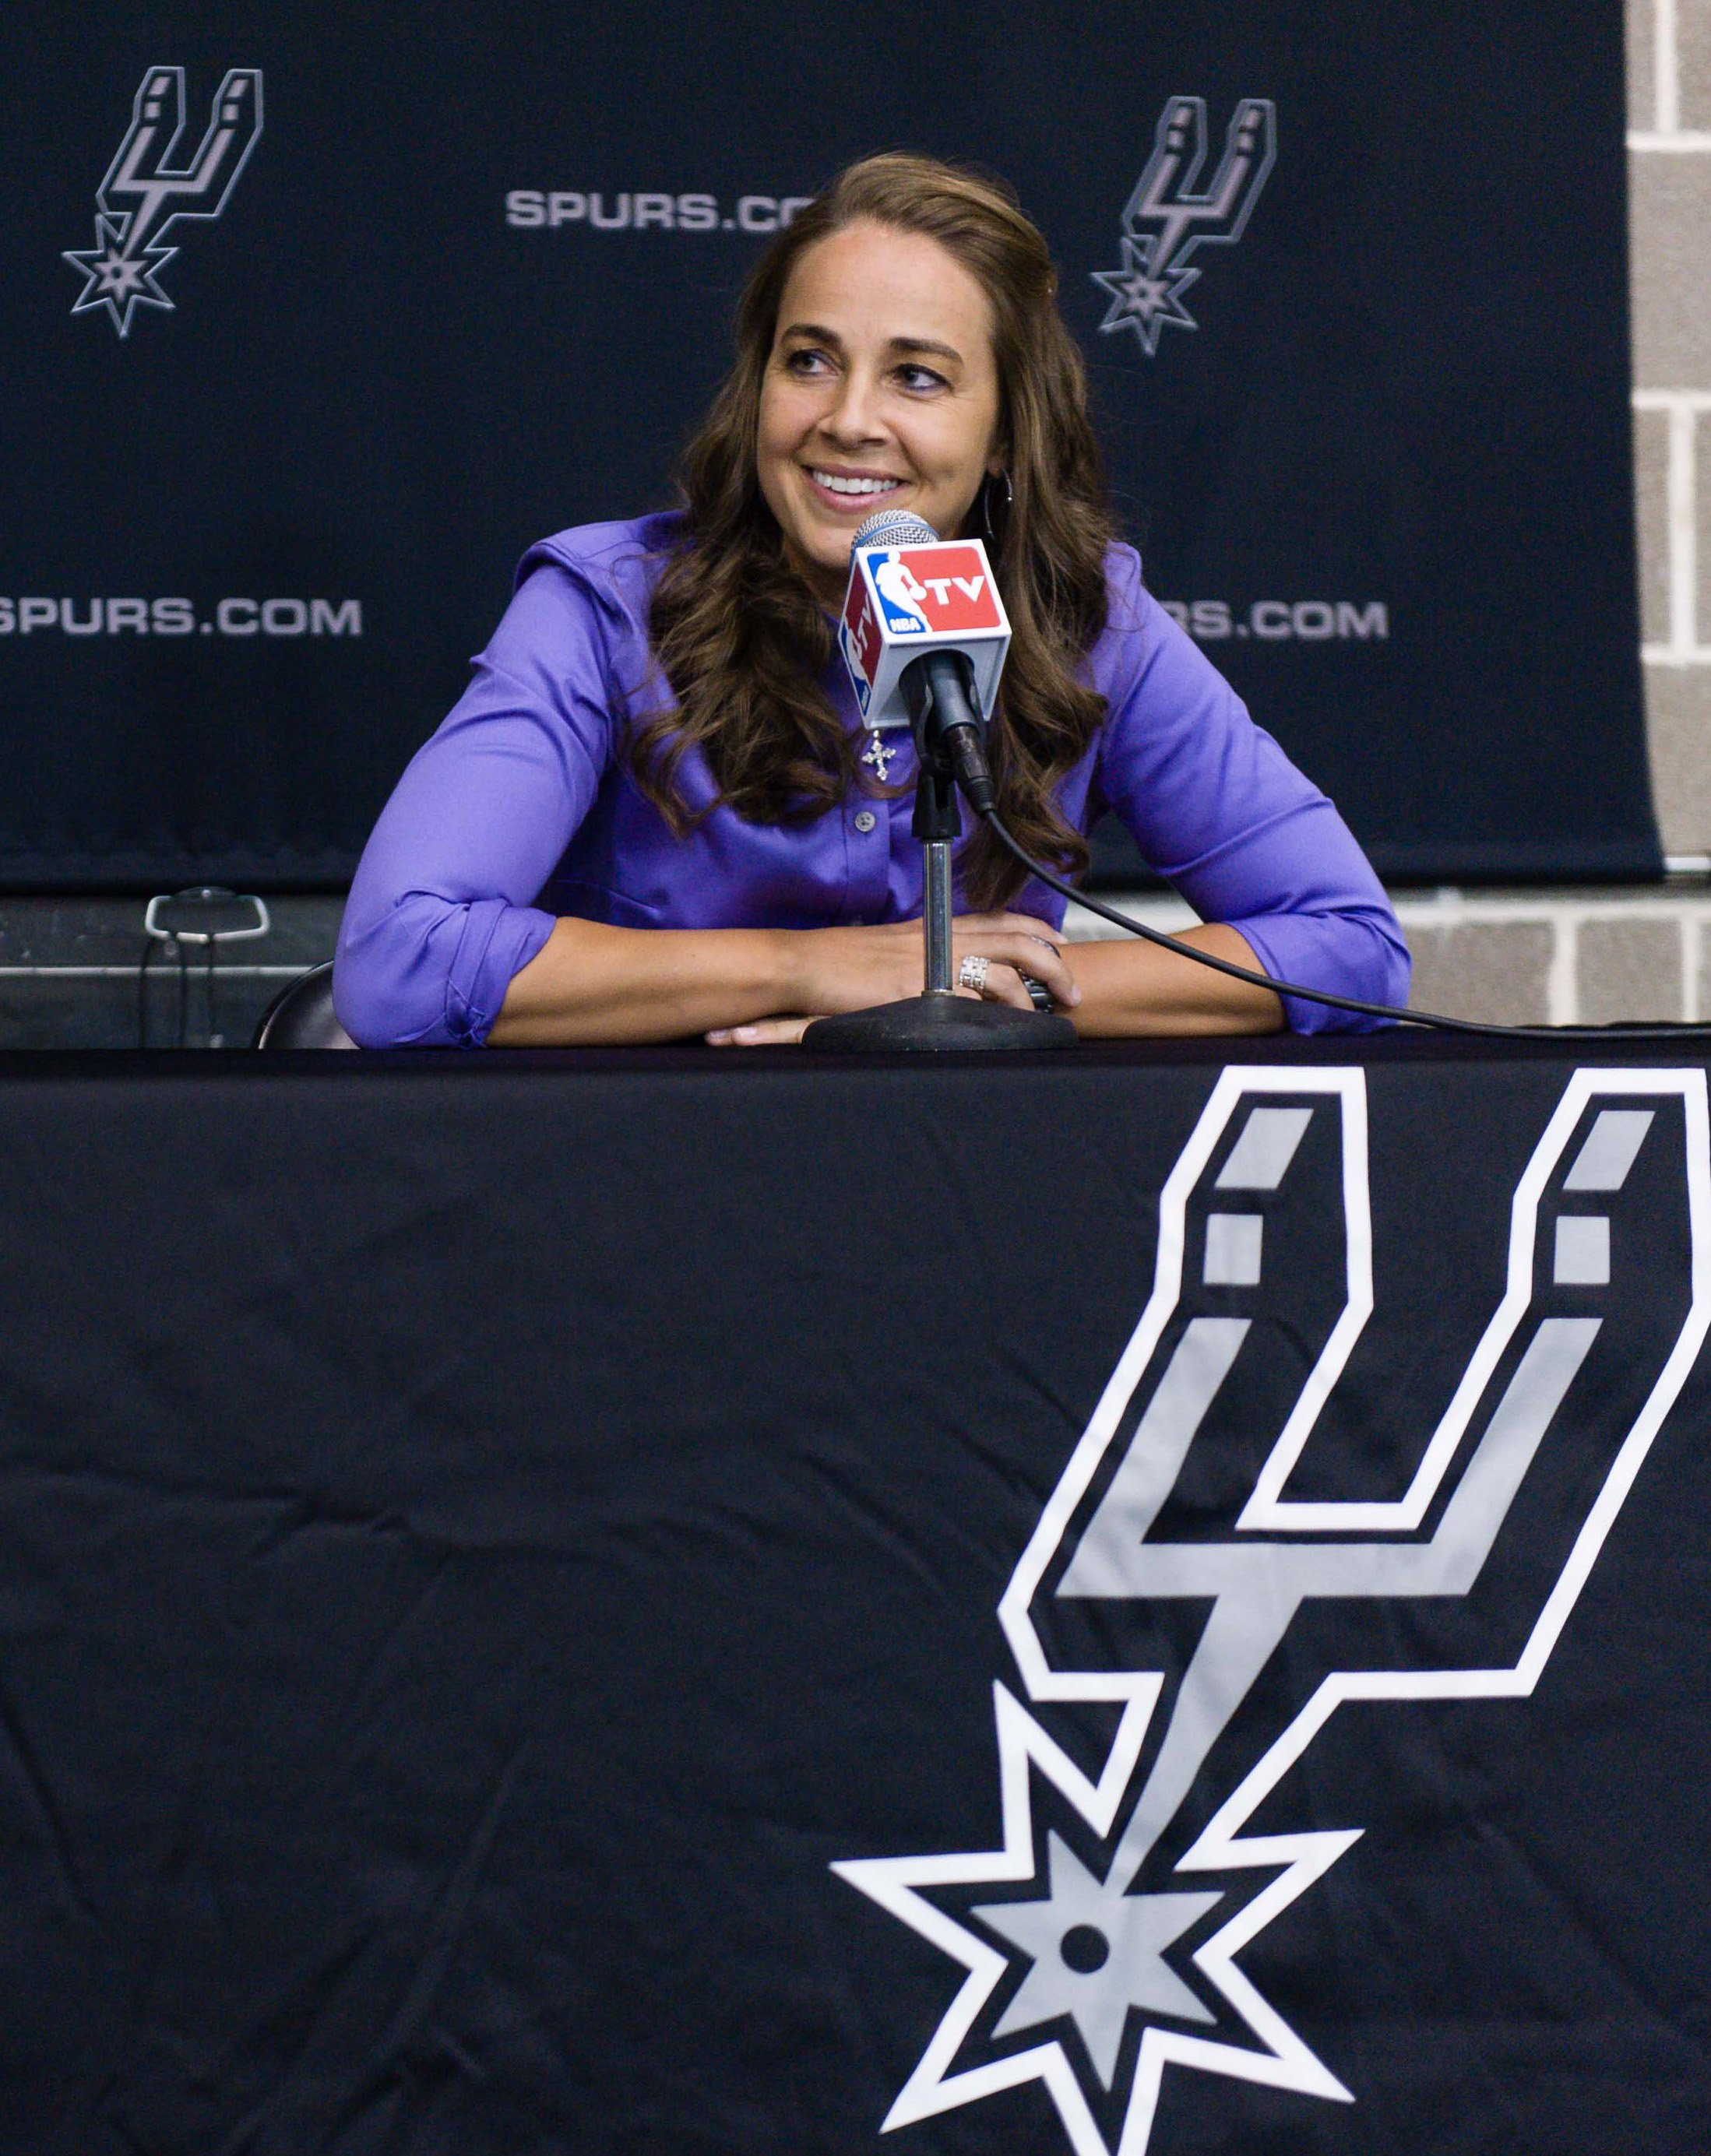 WNBA star Becky Hammon takes questions from the media at the San Antonio Spurs practice facility after being introduced as an assistant coach with the team on Tuesday, Aug. 5, 2014 in San Antonio.